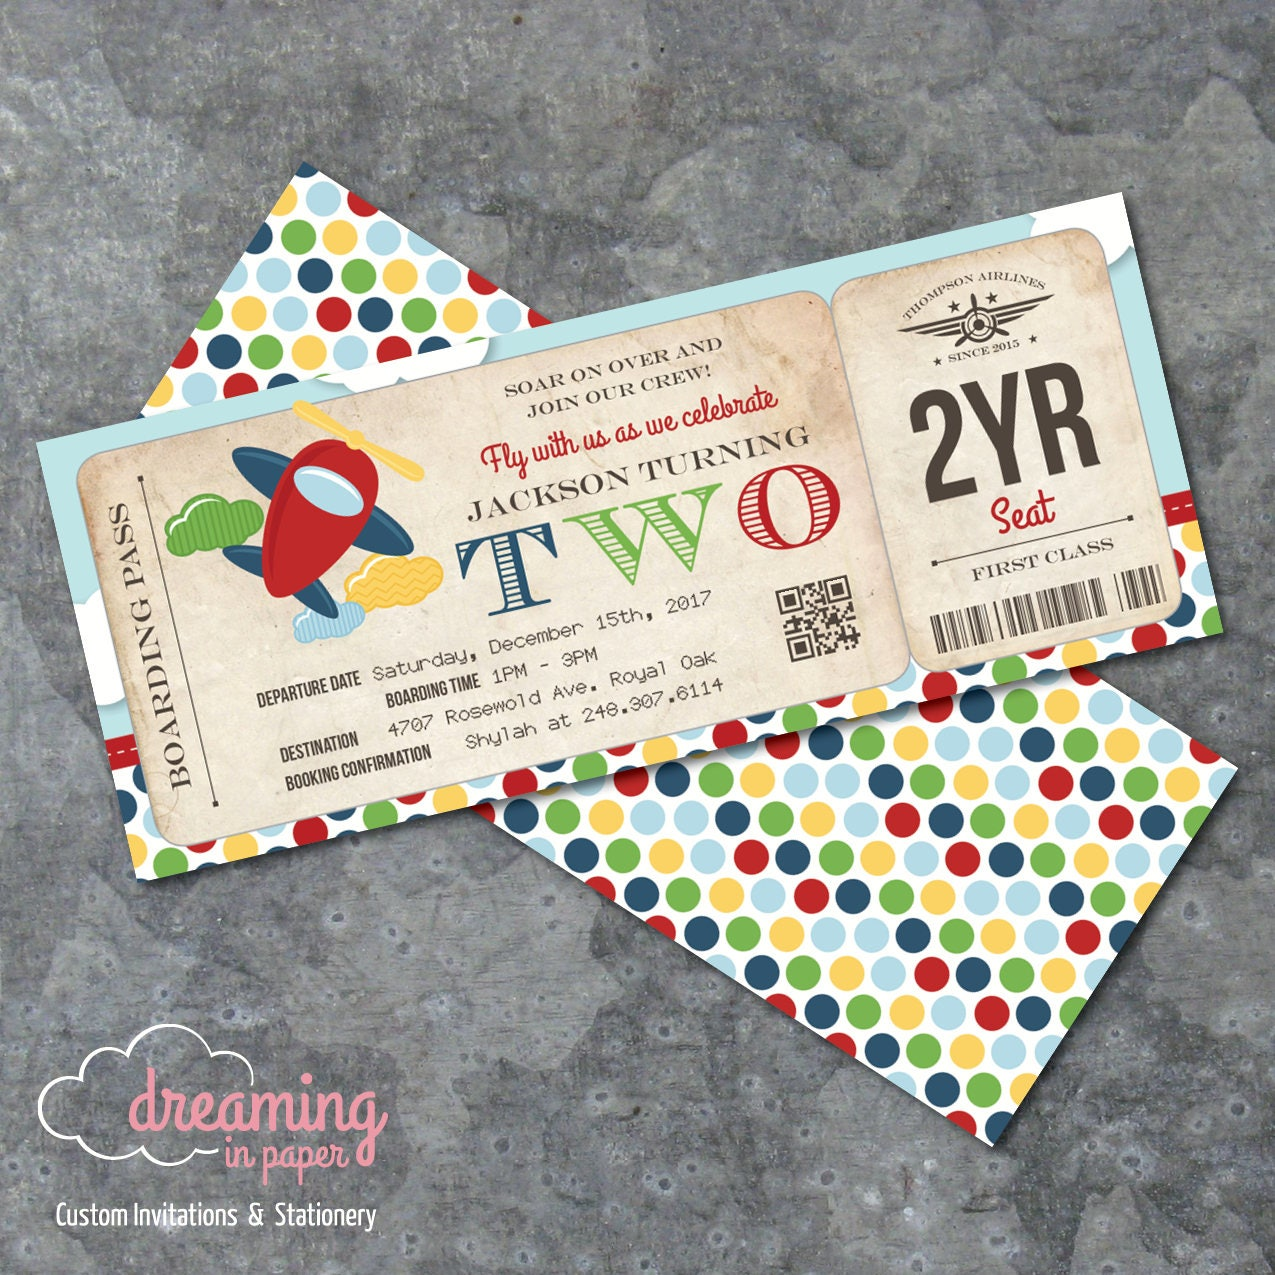 Airplane Ticket Boarding Pass Birthday Invitation: Airplane Airline Boarding Pass Ticket Birthday Invitation